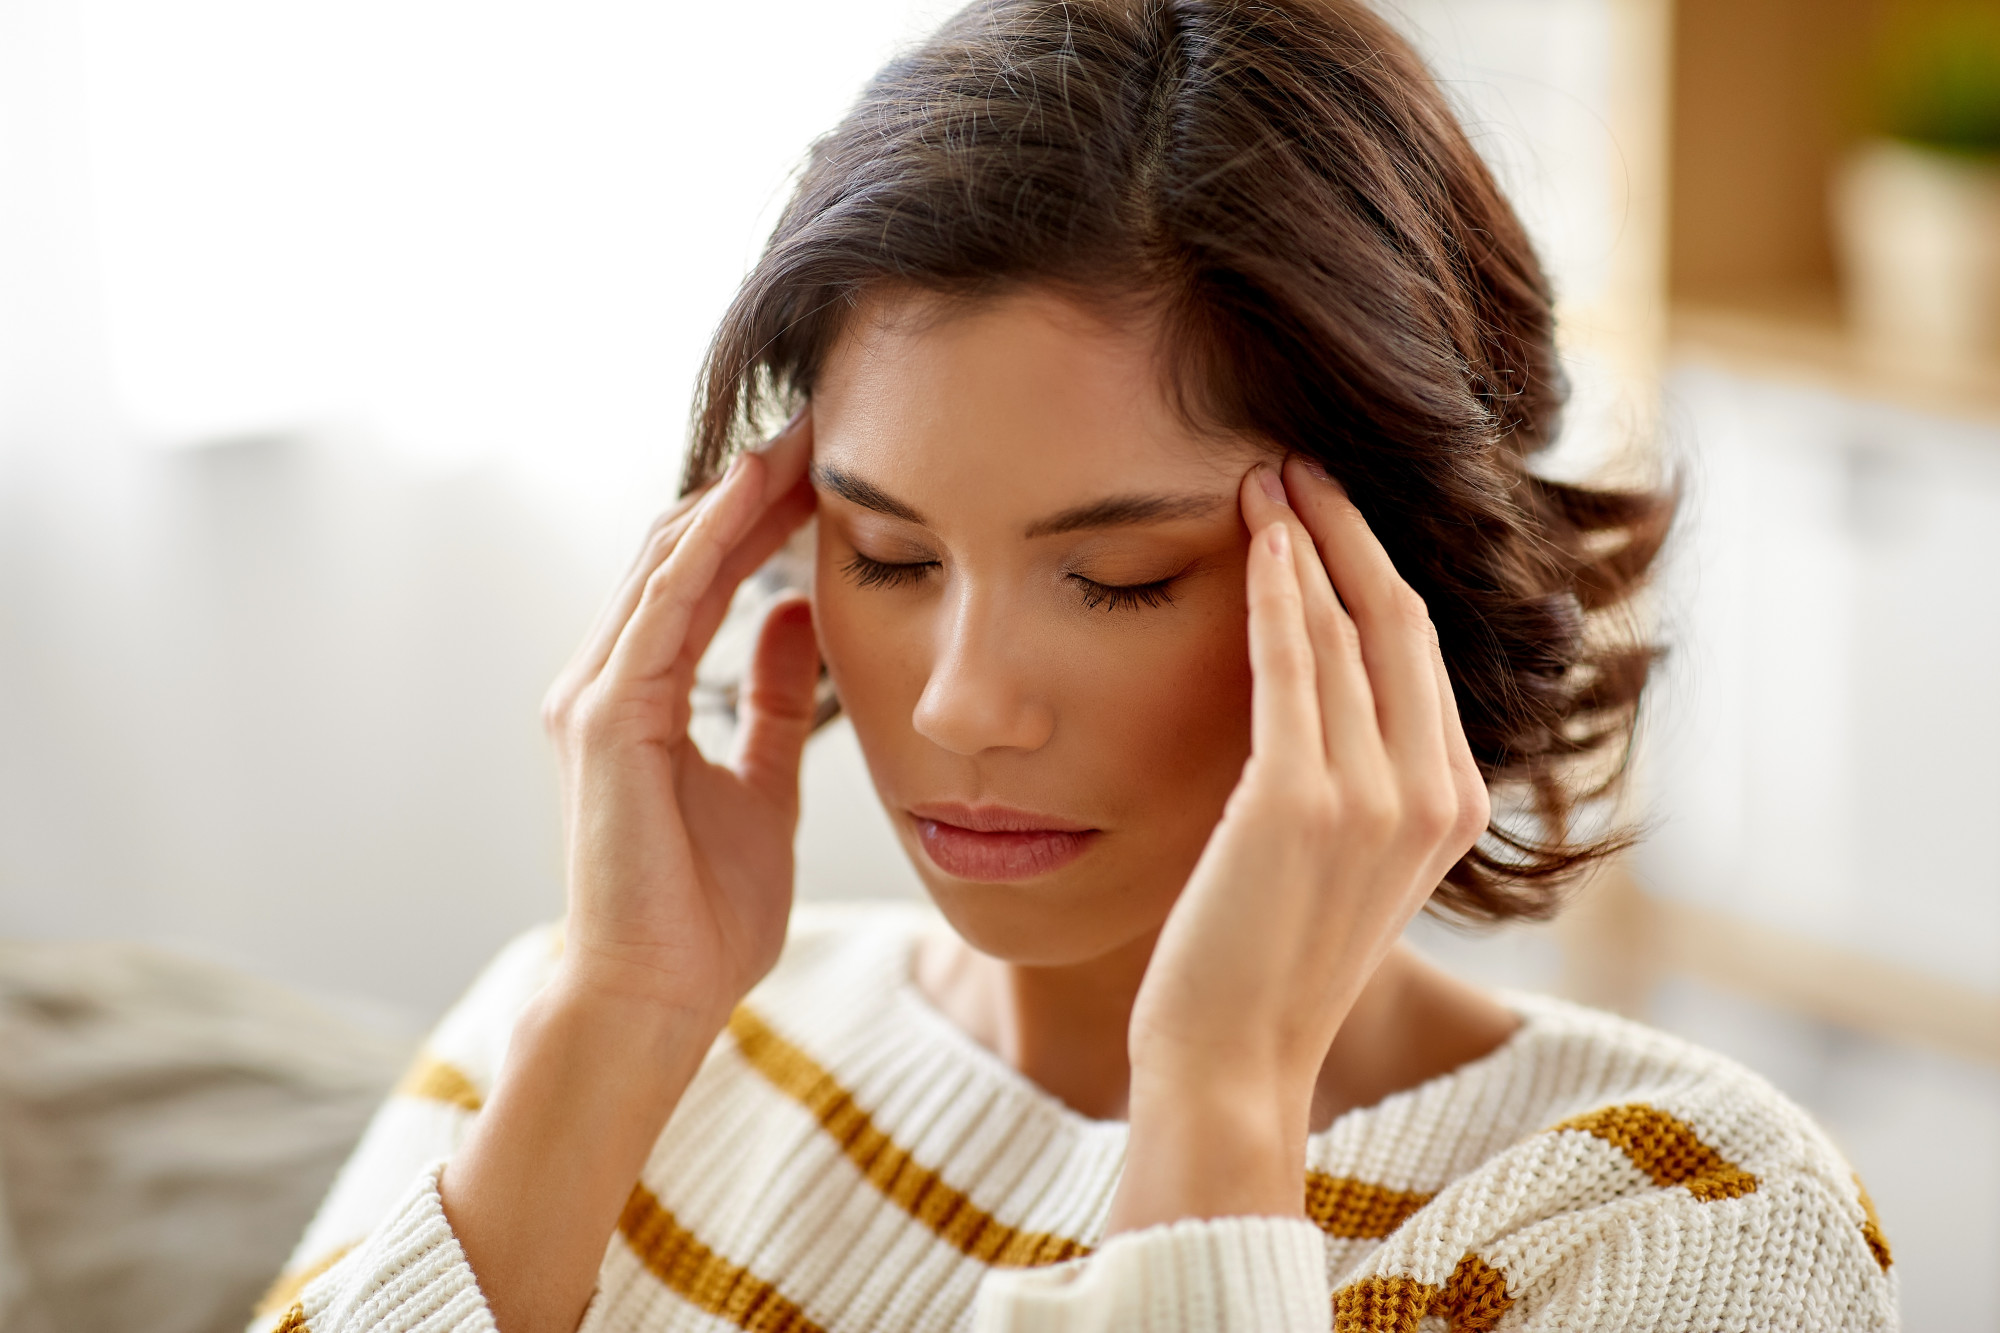 When to Worry About a Headache: 4 Key Signs